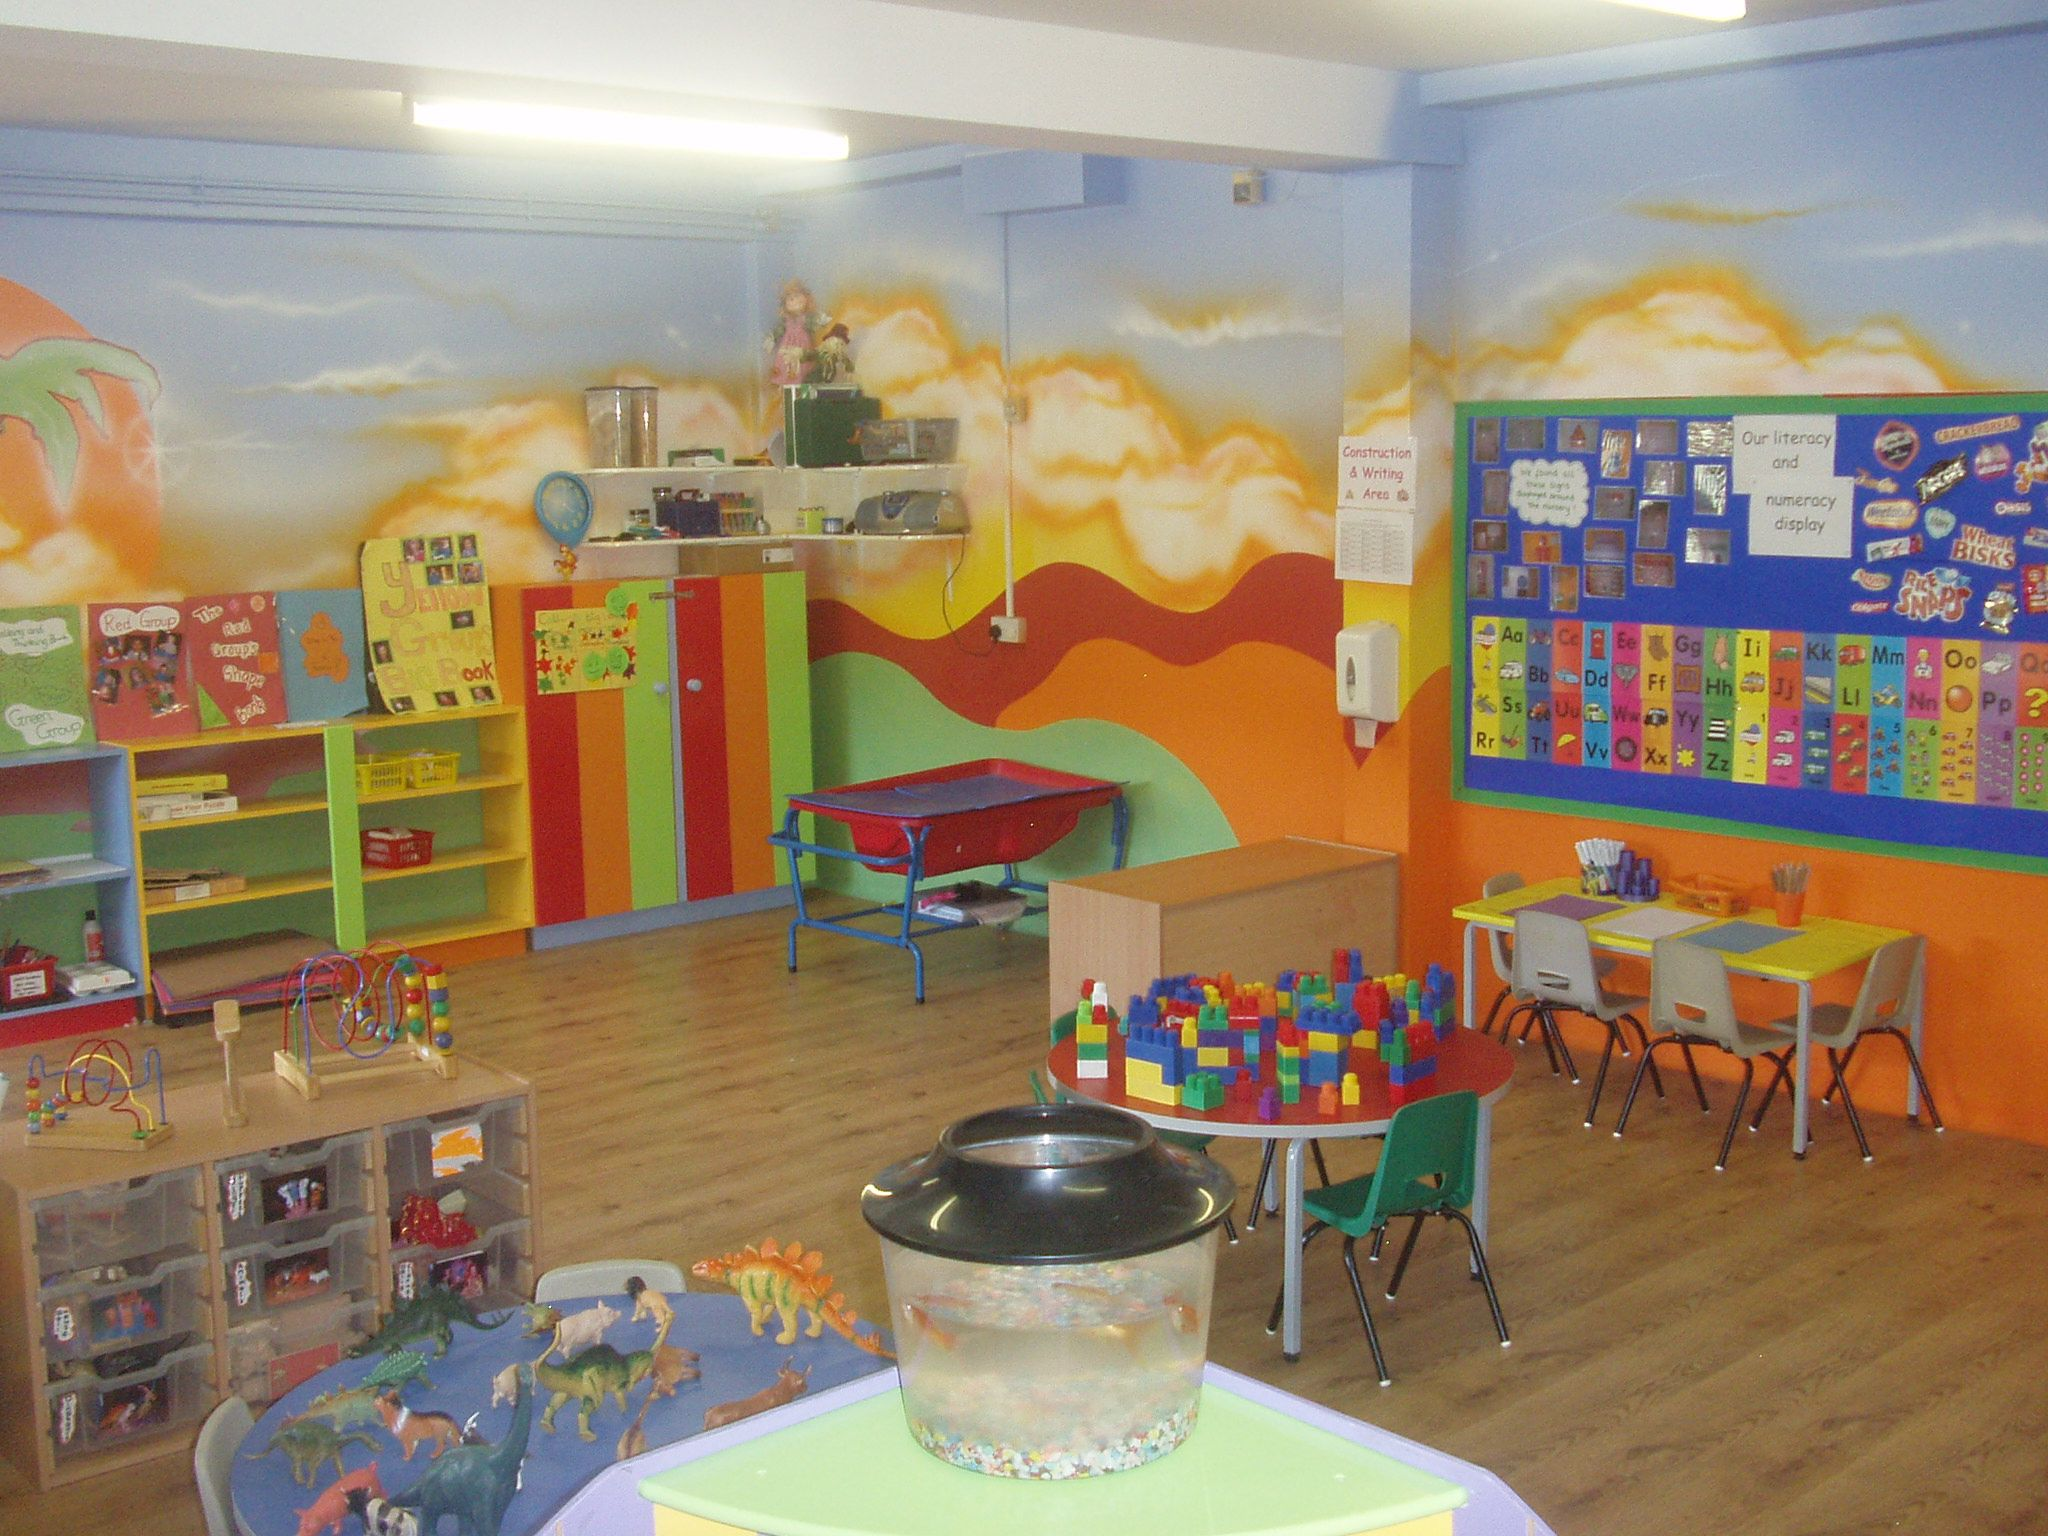 Google Image Result For  Http://www.harlequinkindergarten.org.uk/Quickstart/ImageLib/Toddler_Room_Pic_2.JPG